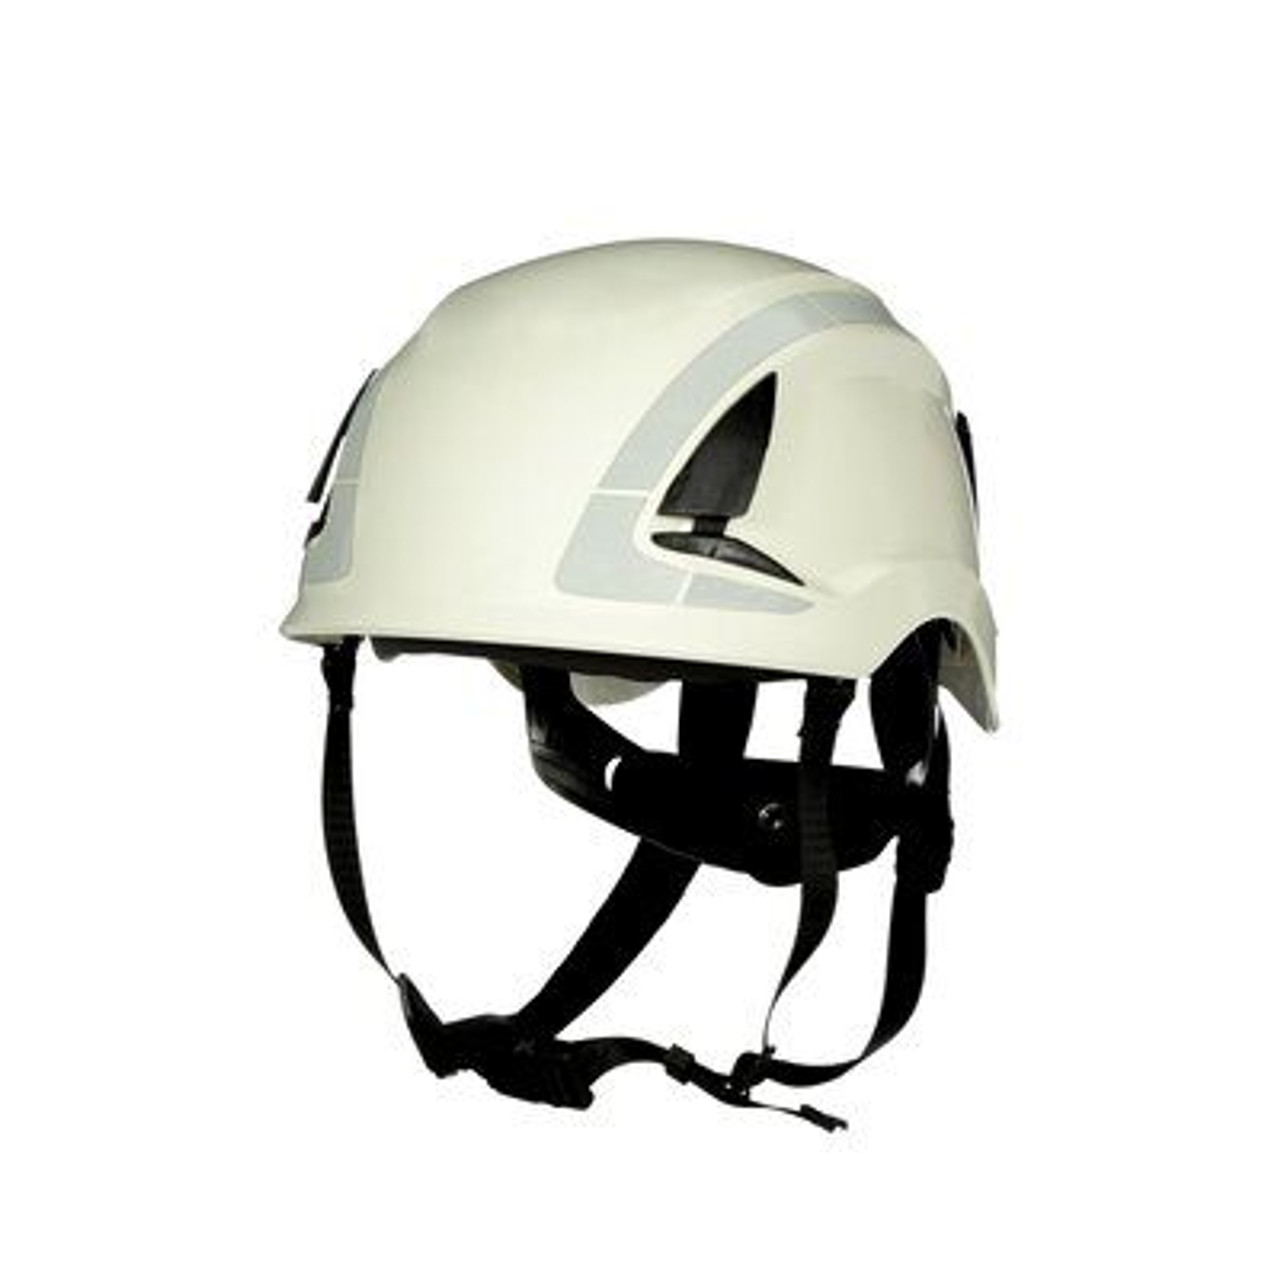 3M X5000 SecureFit Safety Helmet ANSI Non-Vented Reflective 4 Ea/Case - Industrial Safety Products